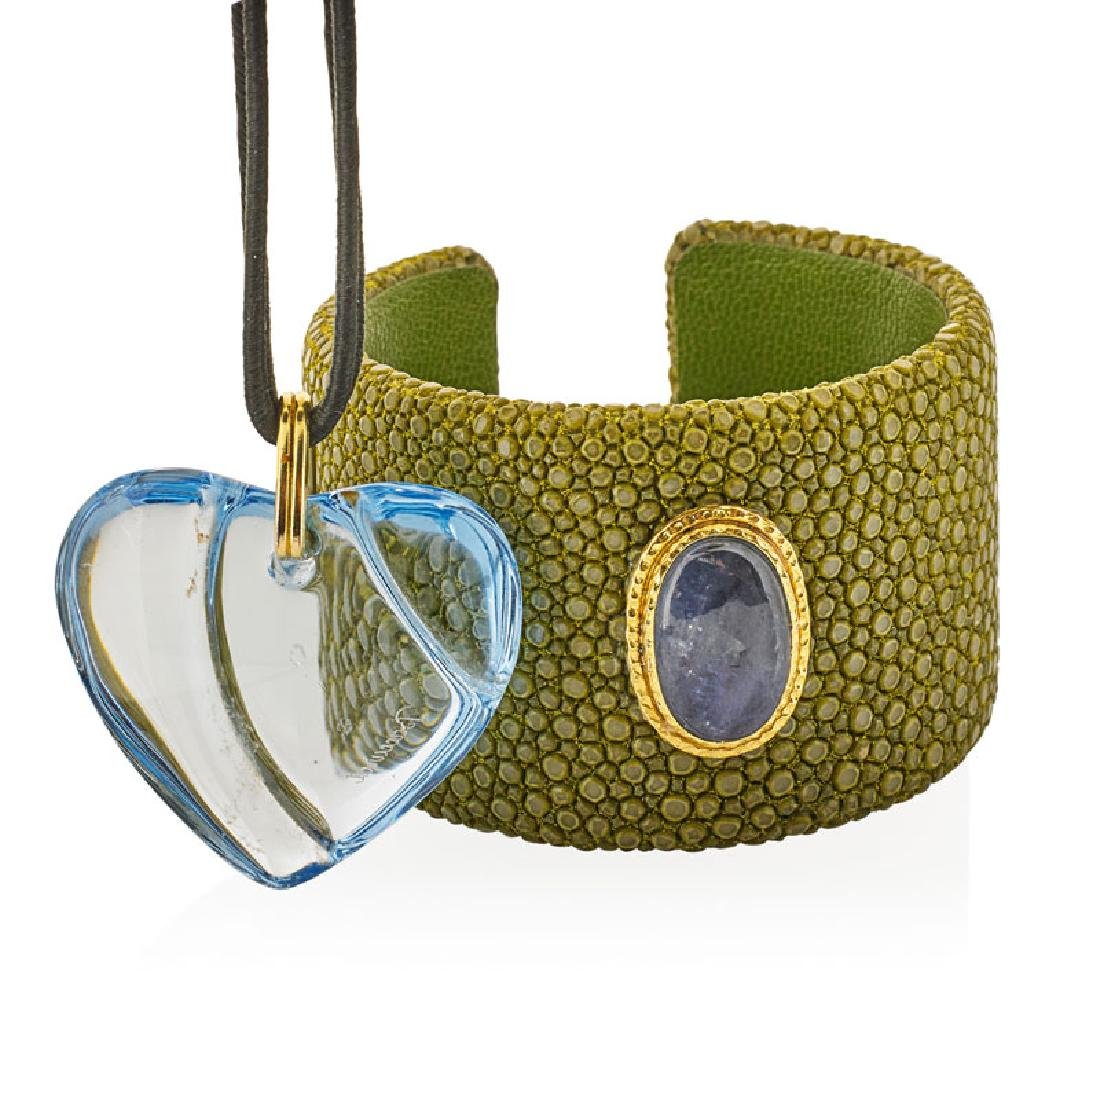 BACCARAT CRYSTAL HEART PENDANT & STINGRAY LEATHER CUFF